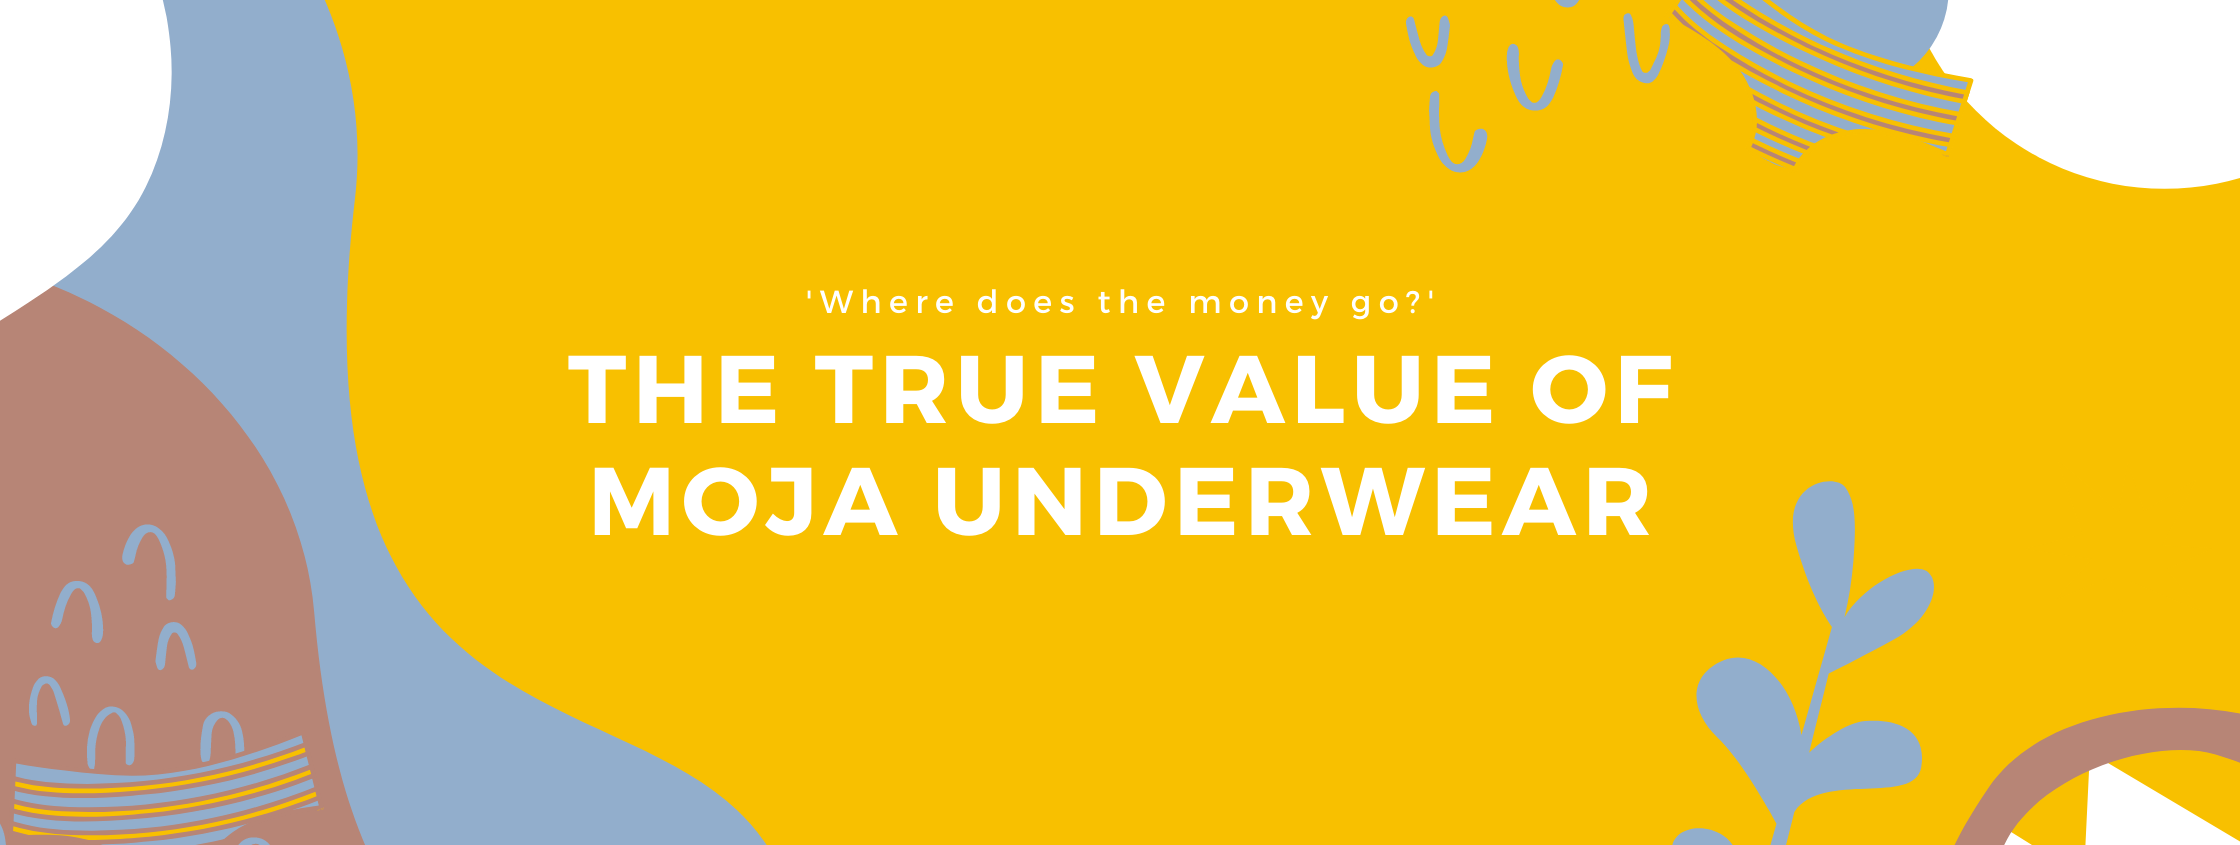 The real value of Moja underwear